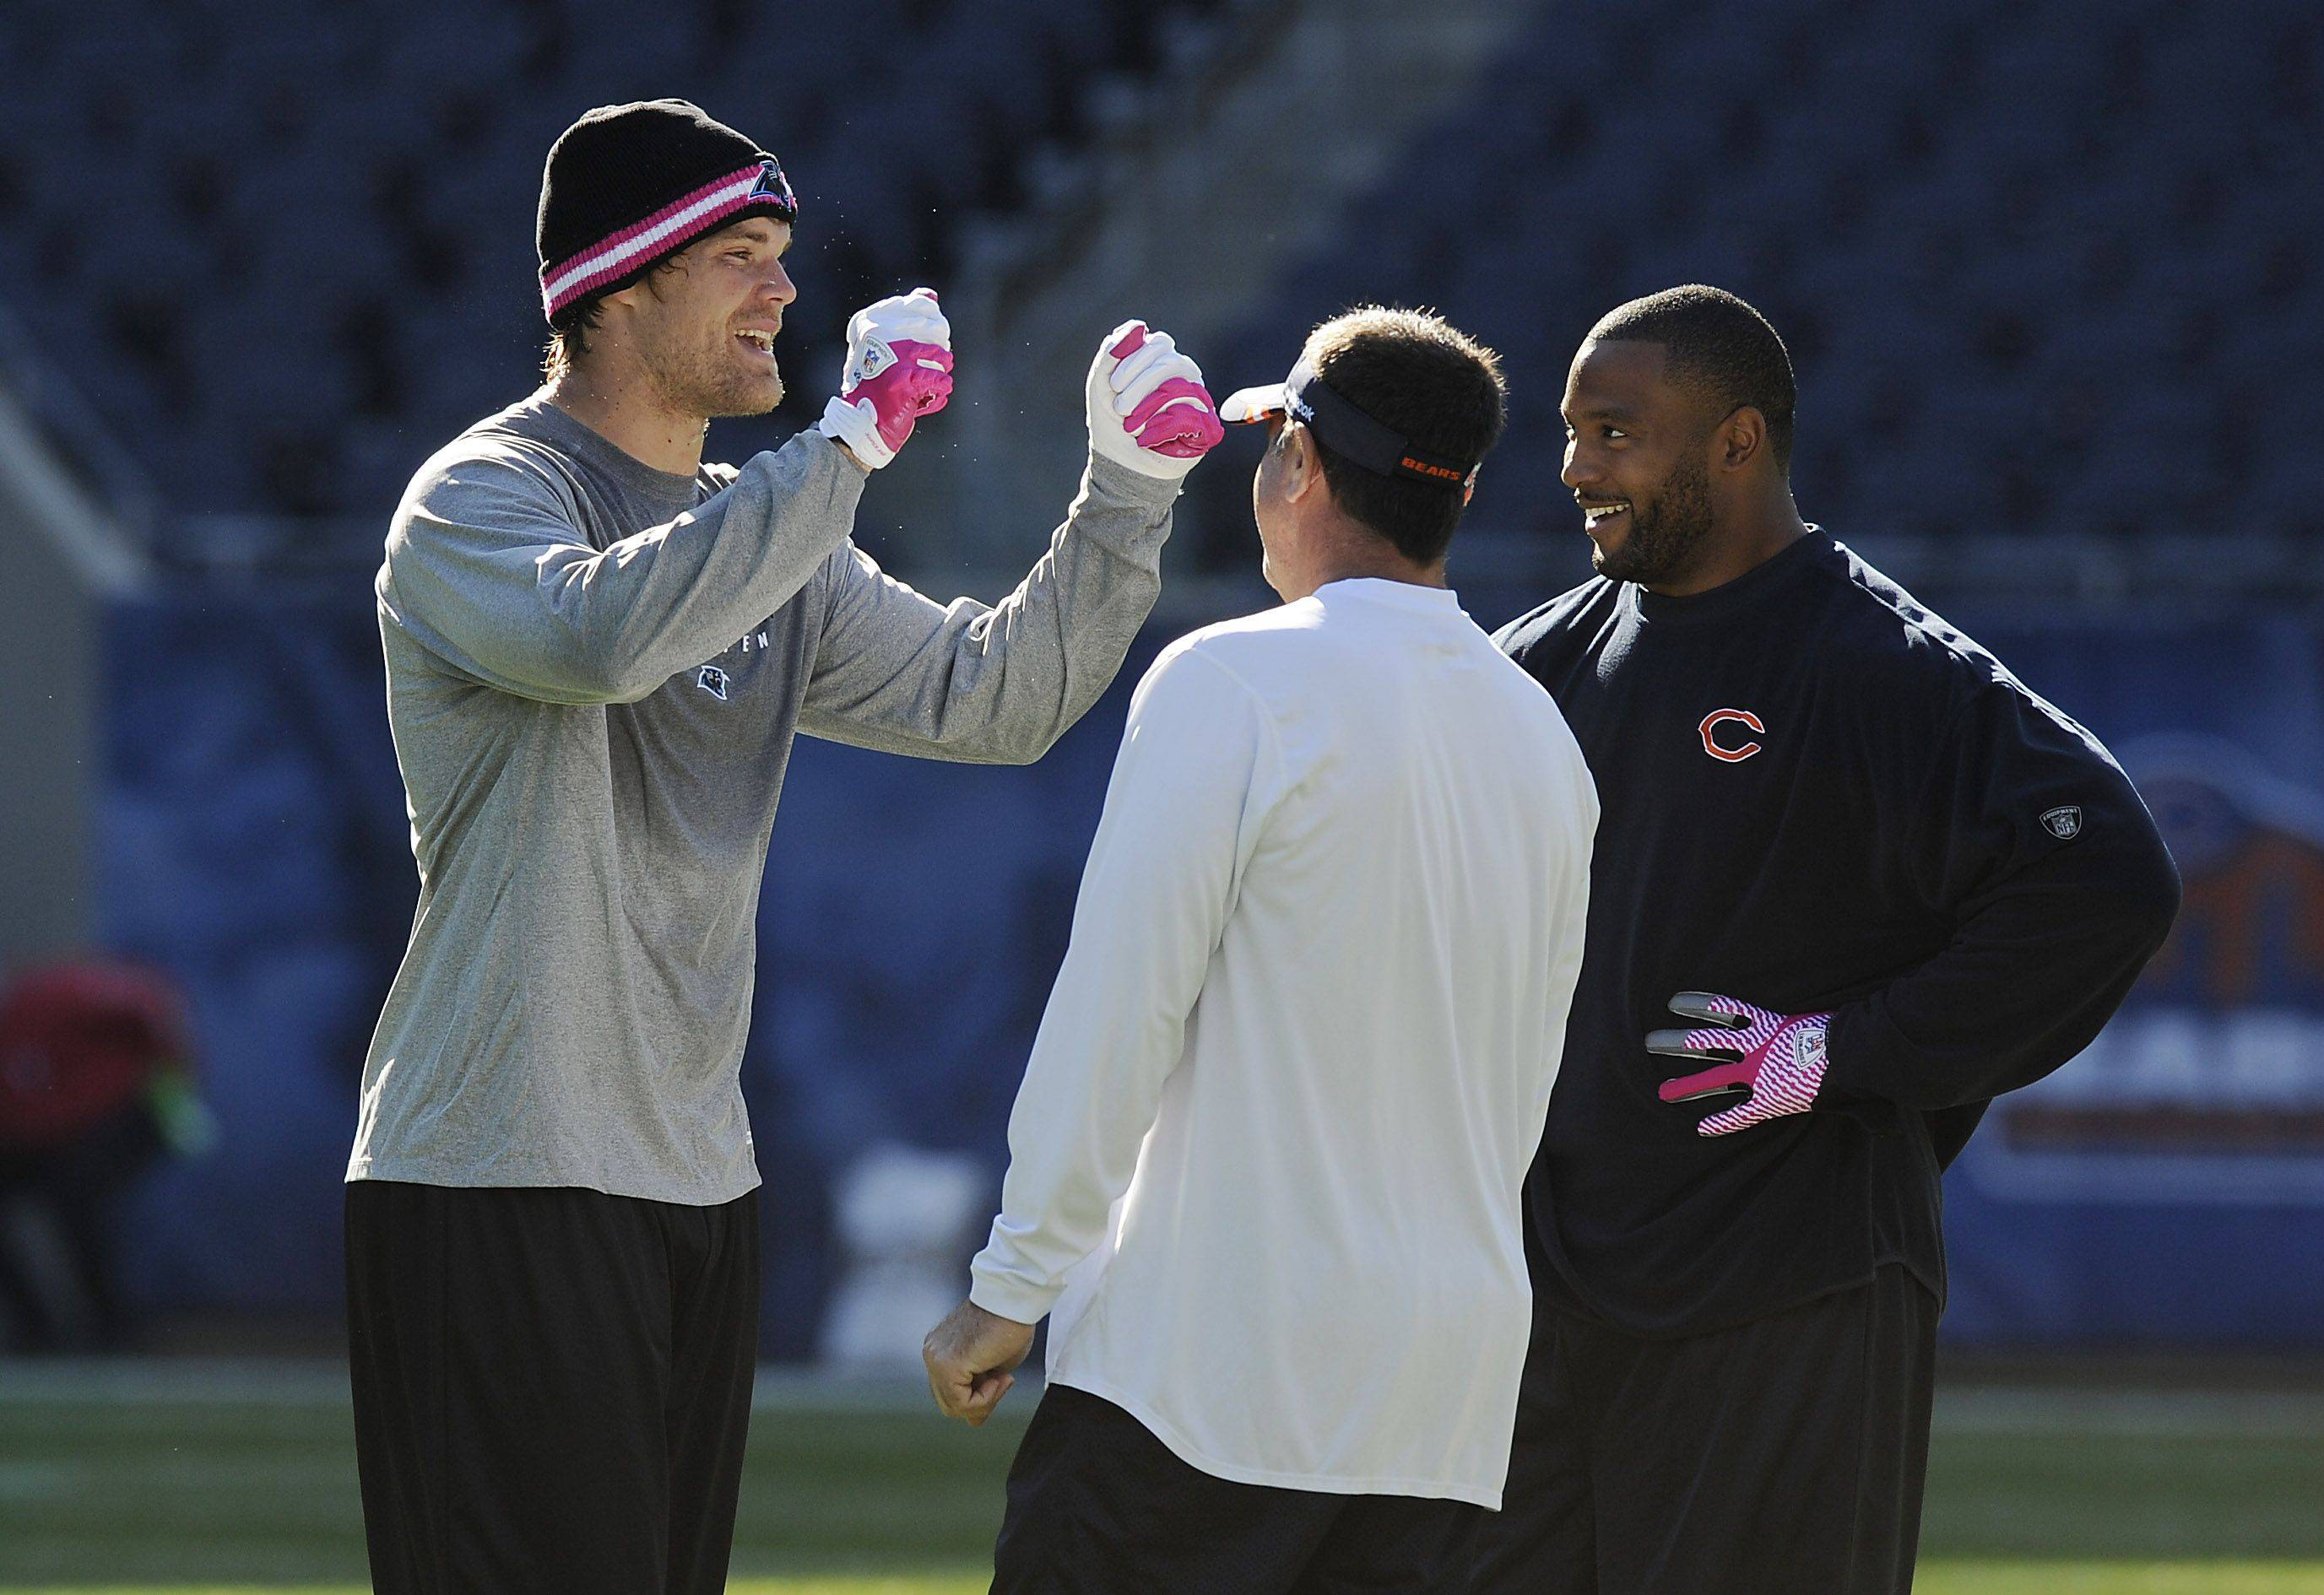 Former Chicago Bears Greg Olsen talks with Chicago Bears Lance Briggs (right) before the game.